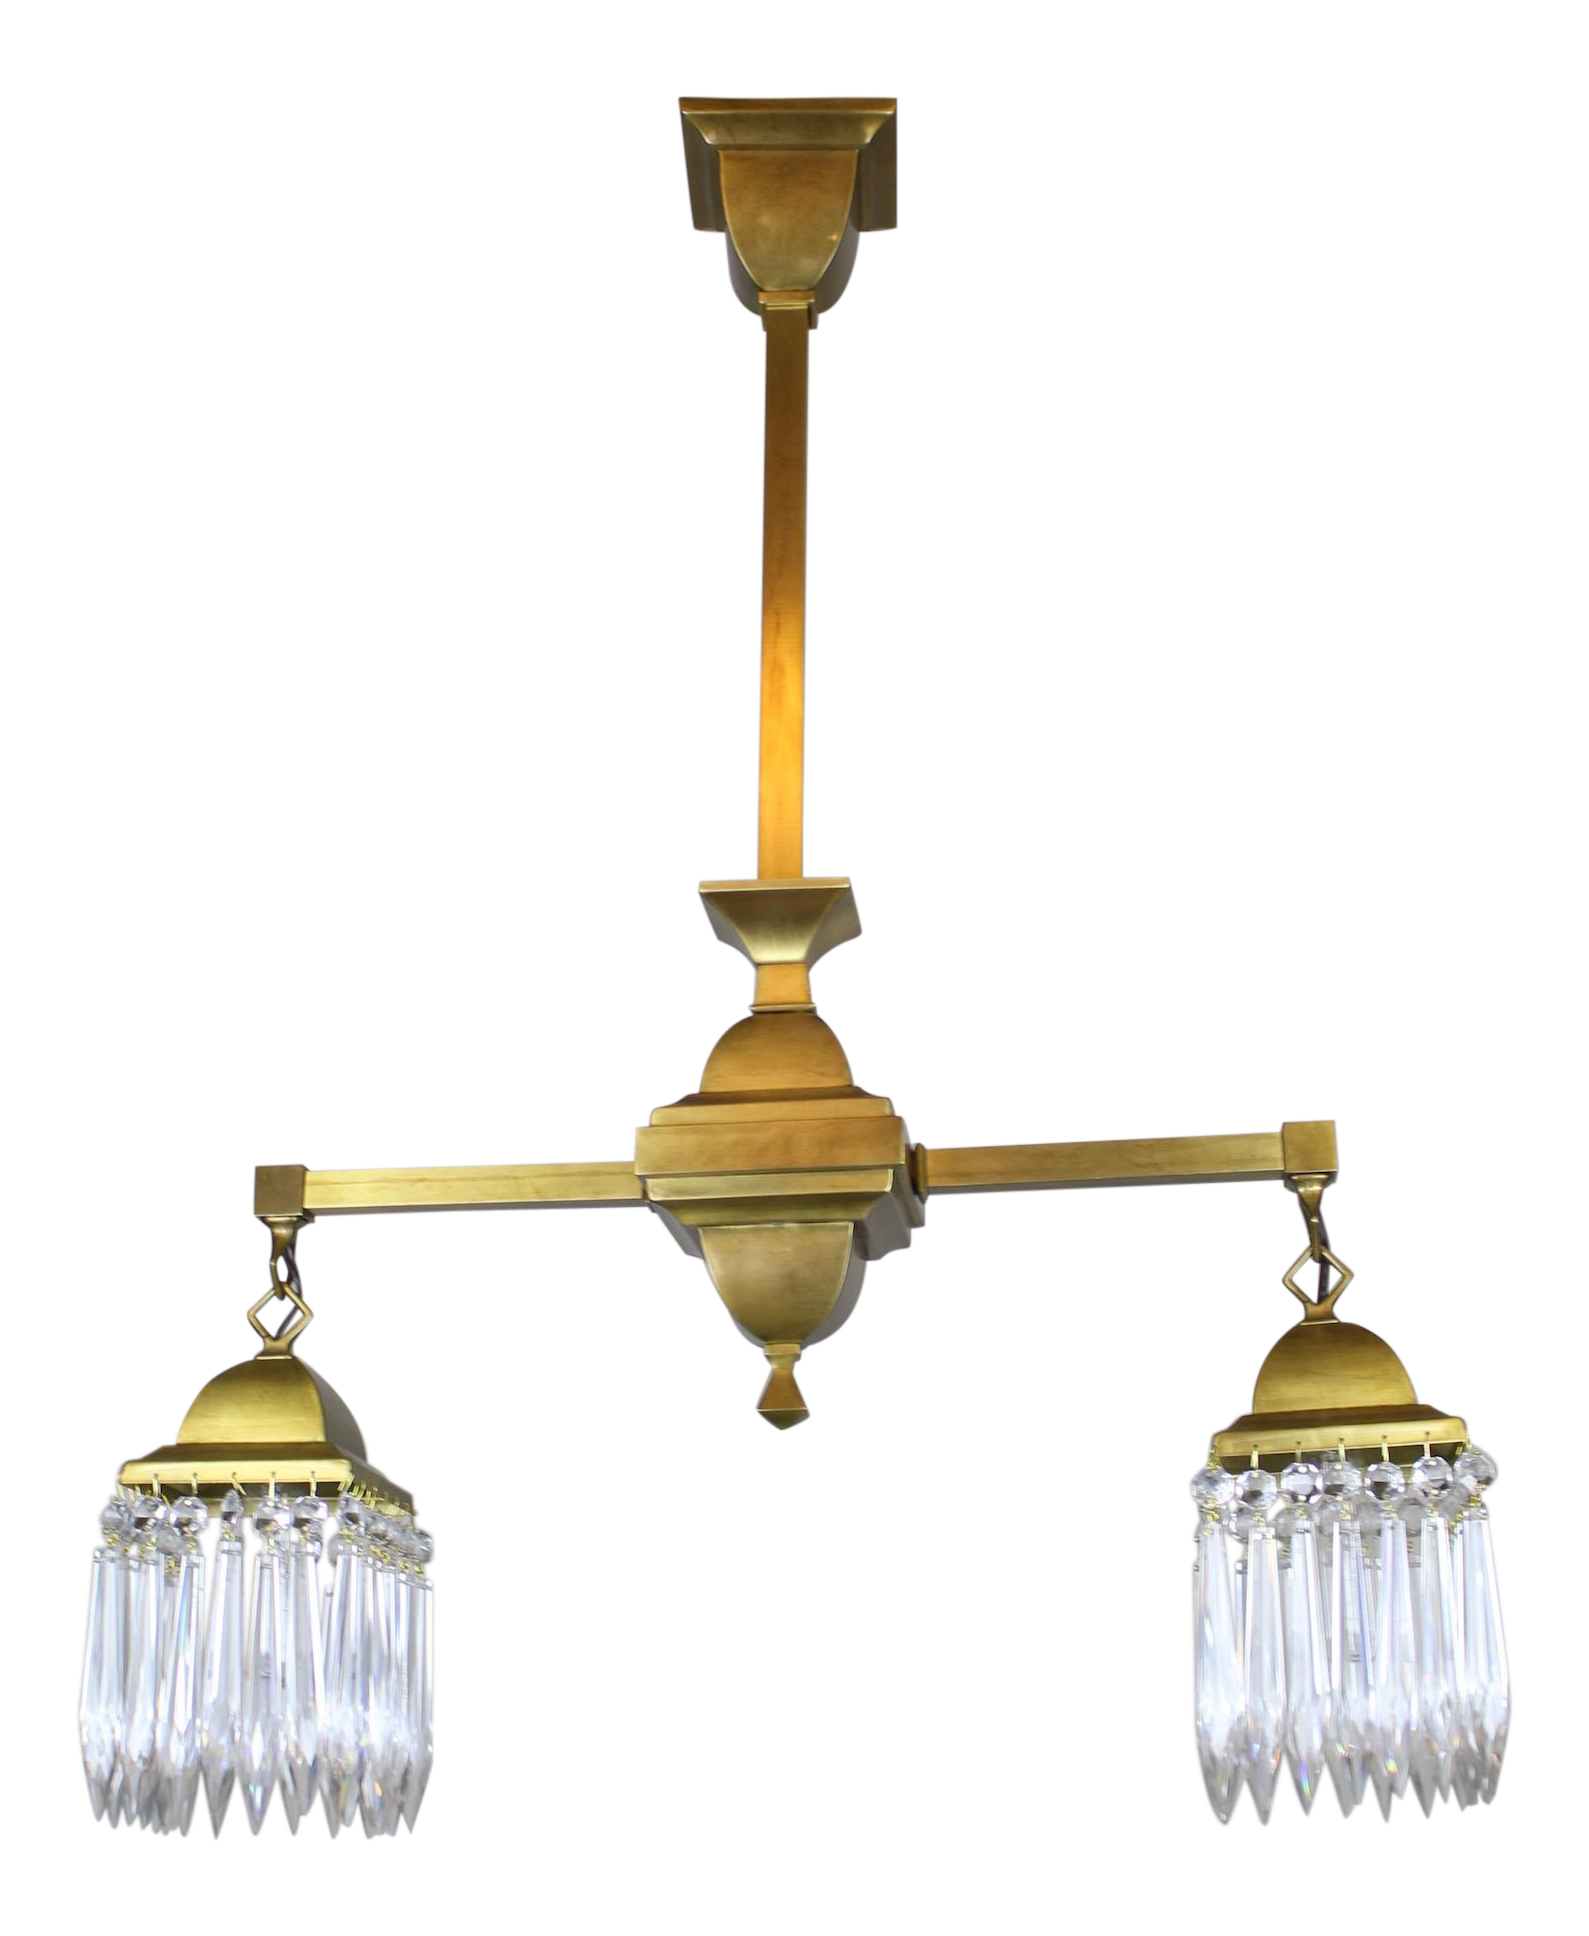 prairie awesome size visual comfort full stunning iron grey of hook faucets design brass craftsman mission lightin chandeliers chain chandelier style bathroom lights